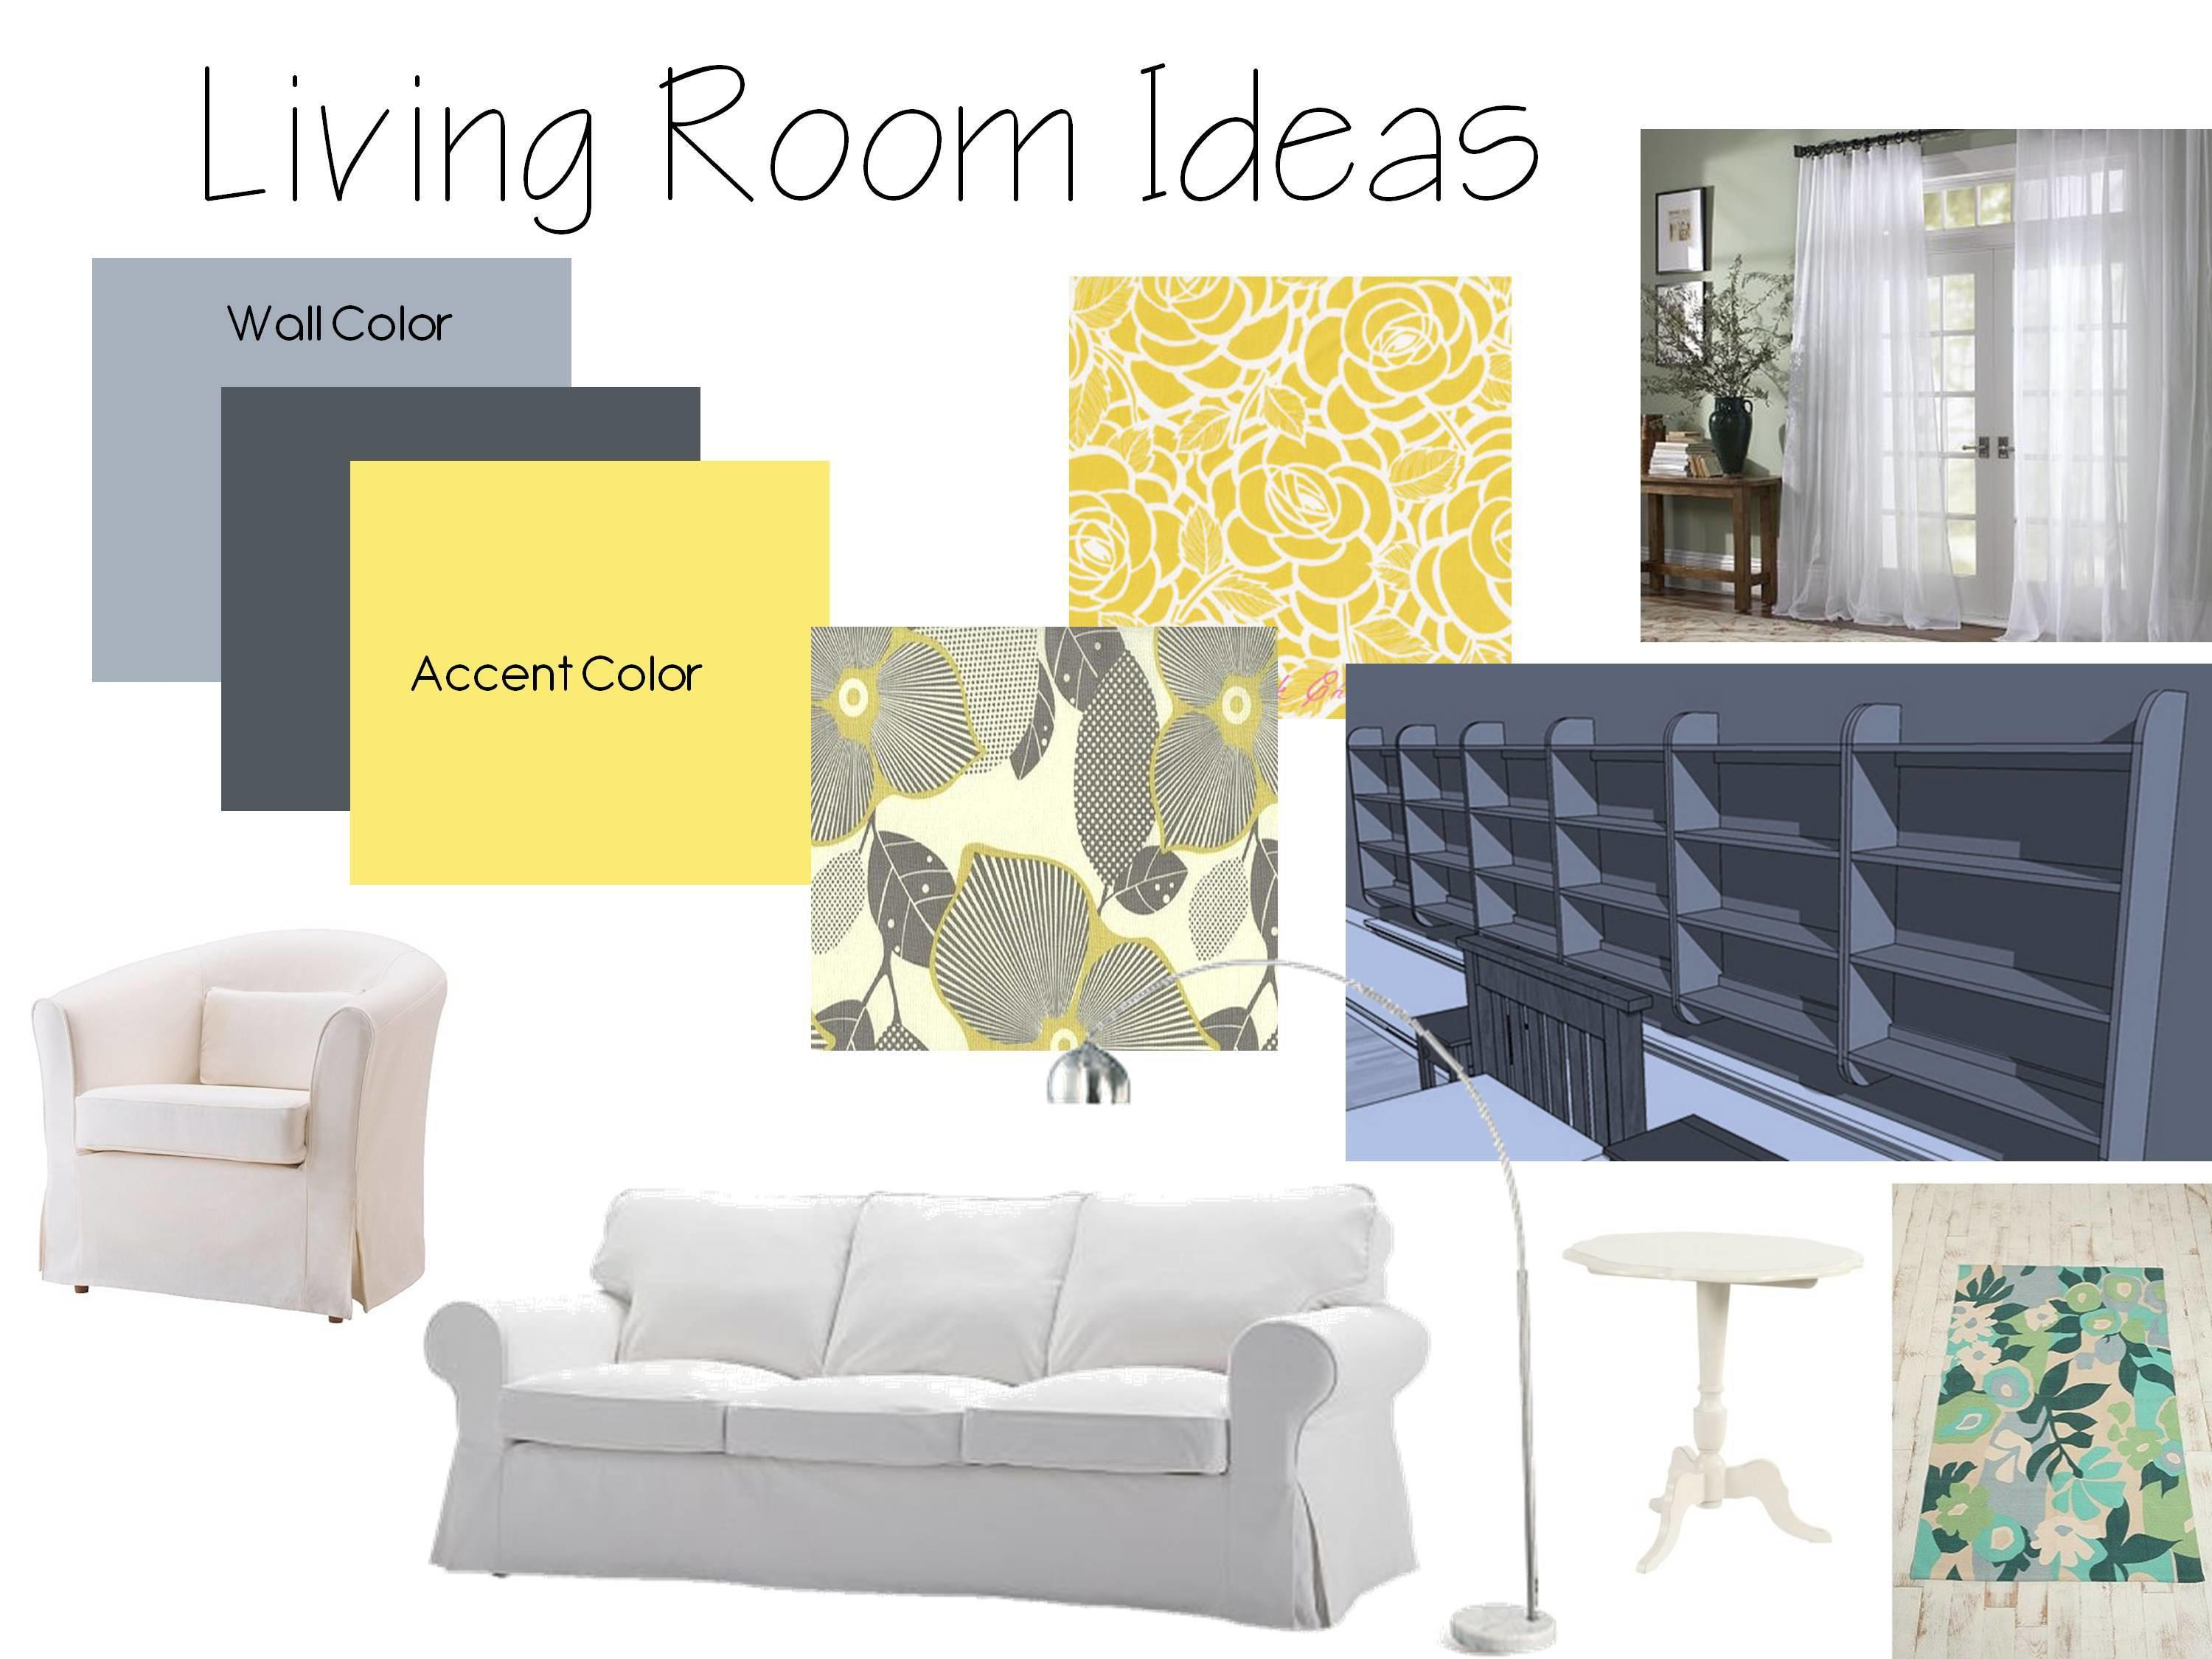 Grey Couch Accent Colors Living Room Ideas